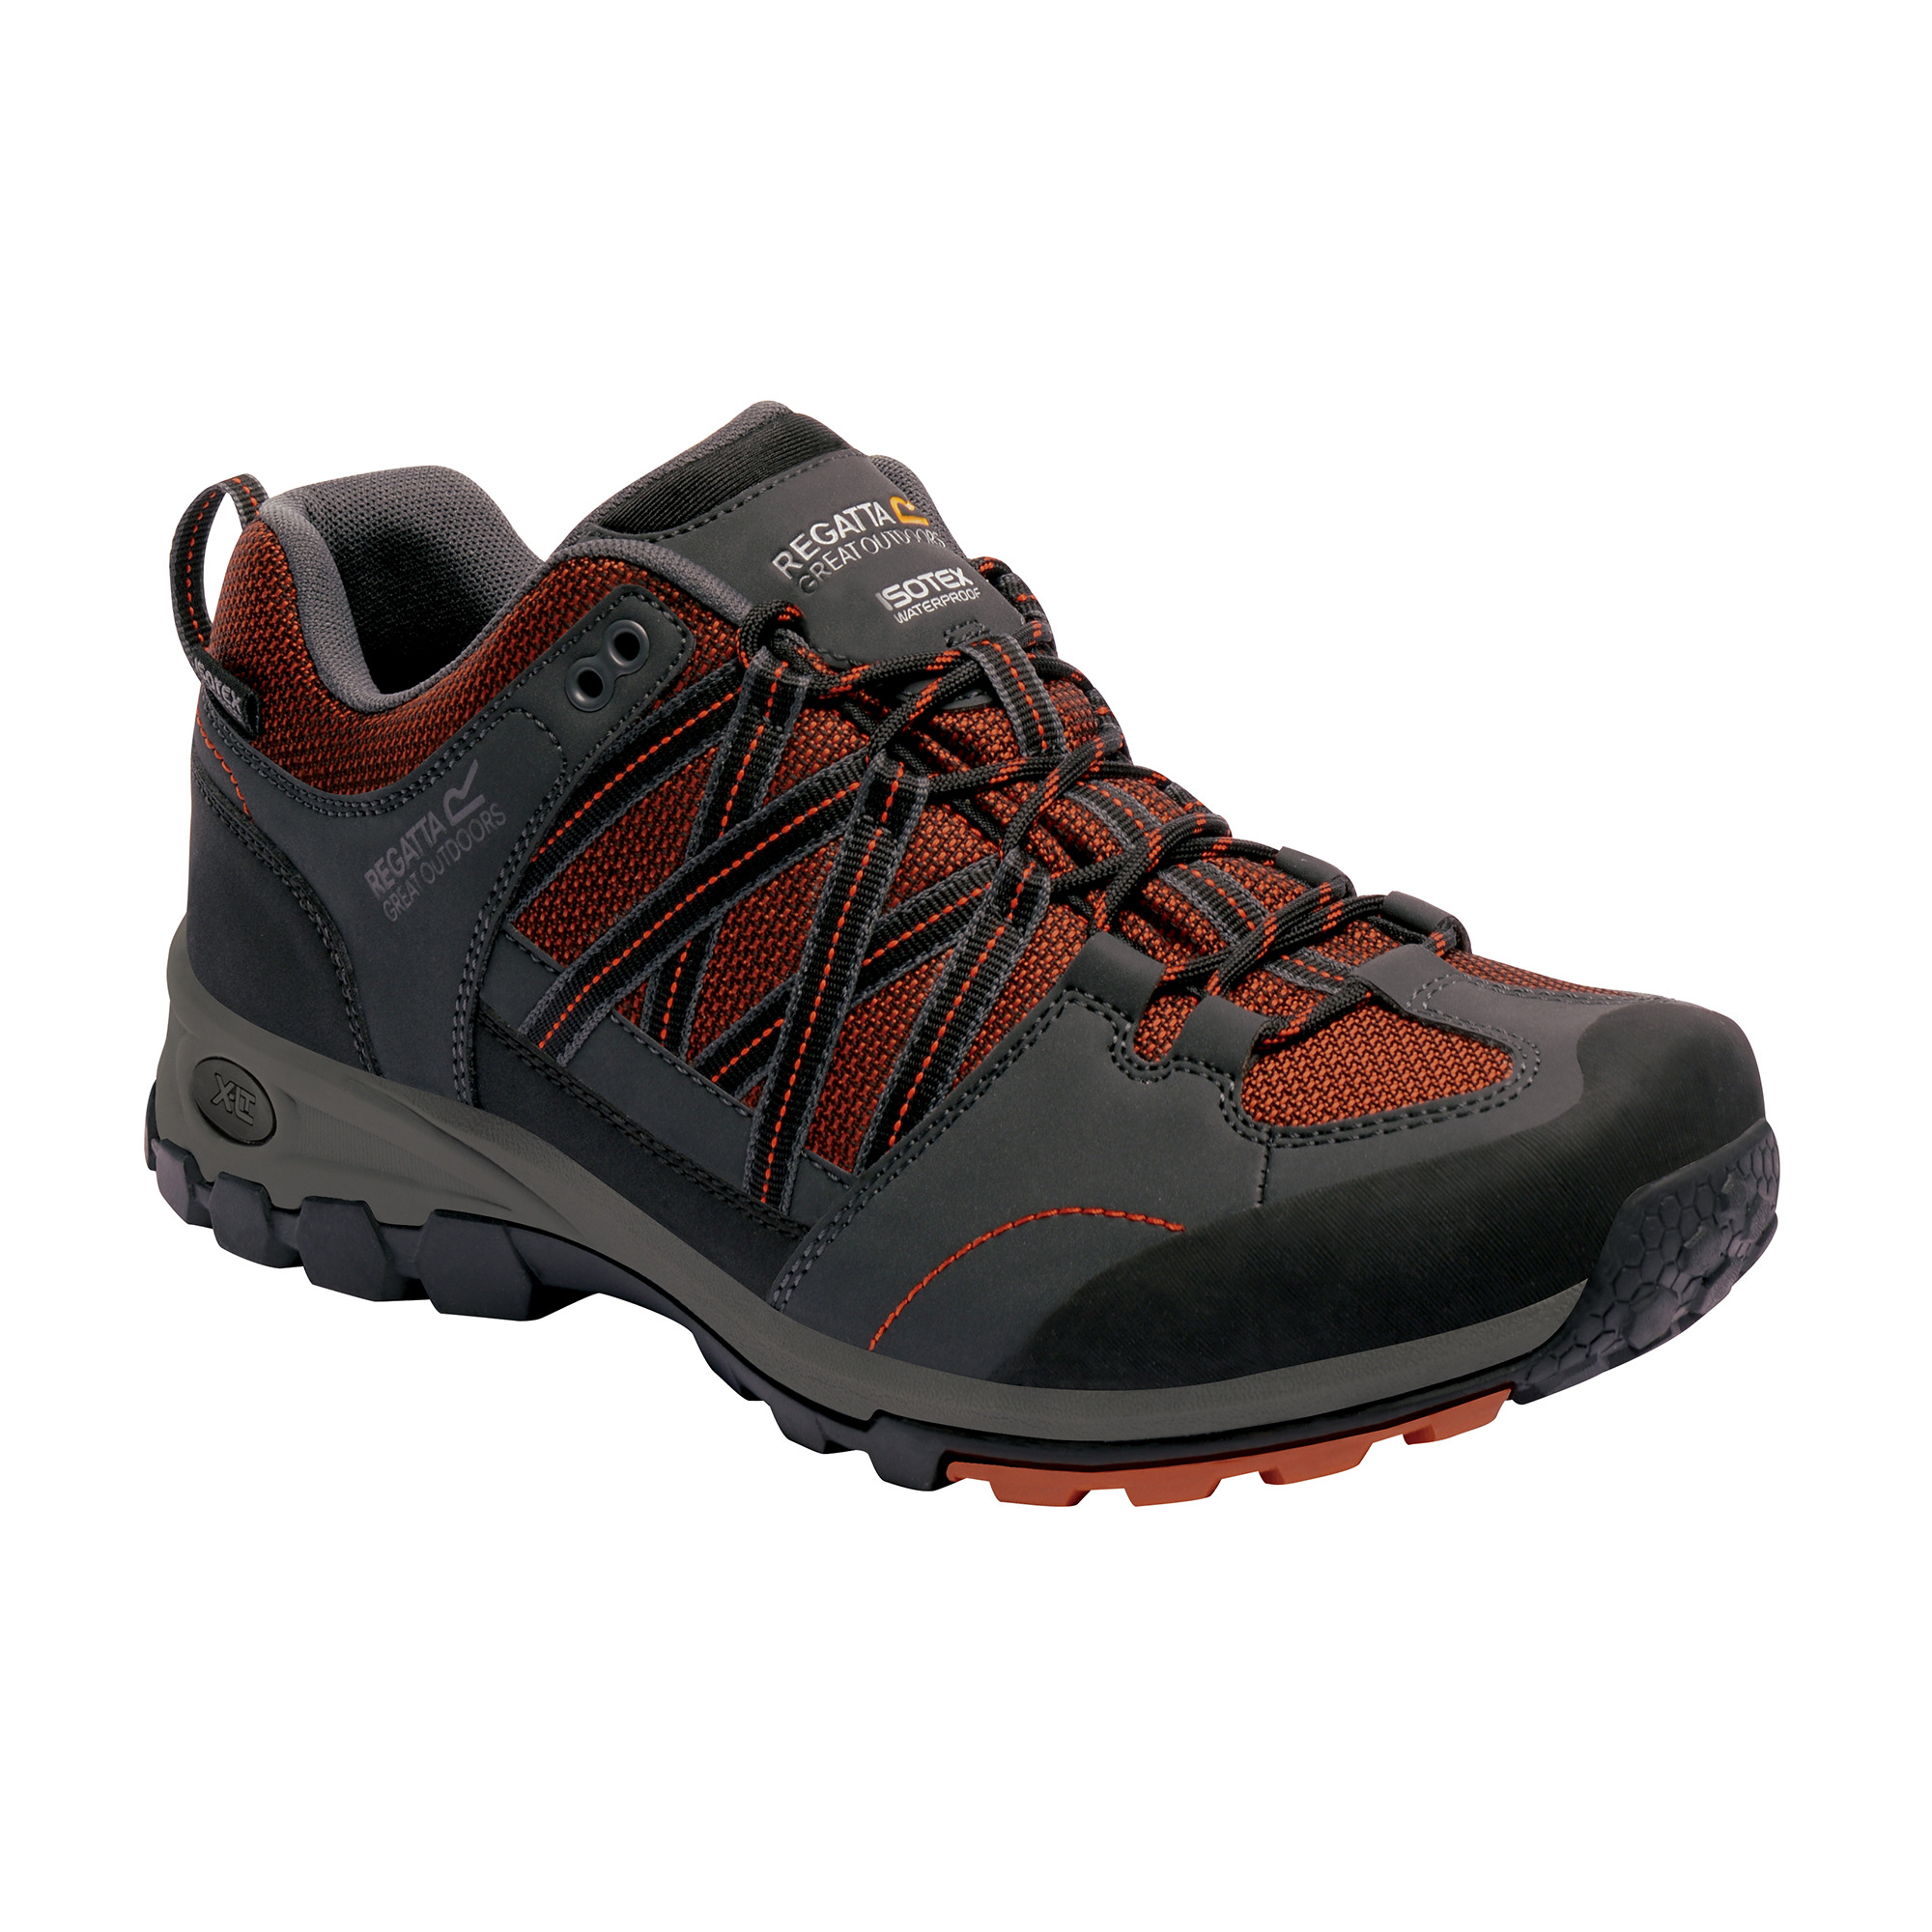 Regatta-Great-Outdoors-Mens-Samaris-Low-Contrast-Lace-Up-Hiking-Boots-RG1877